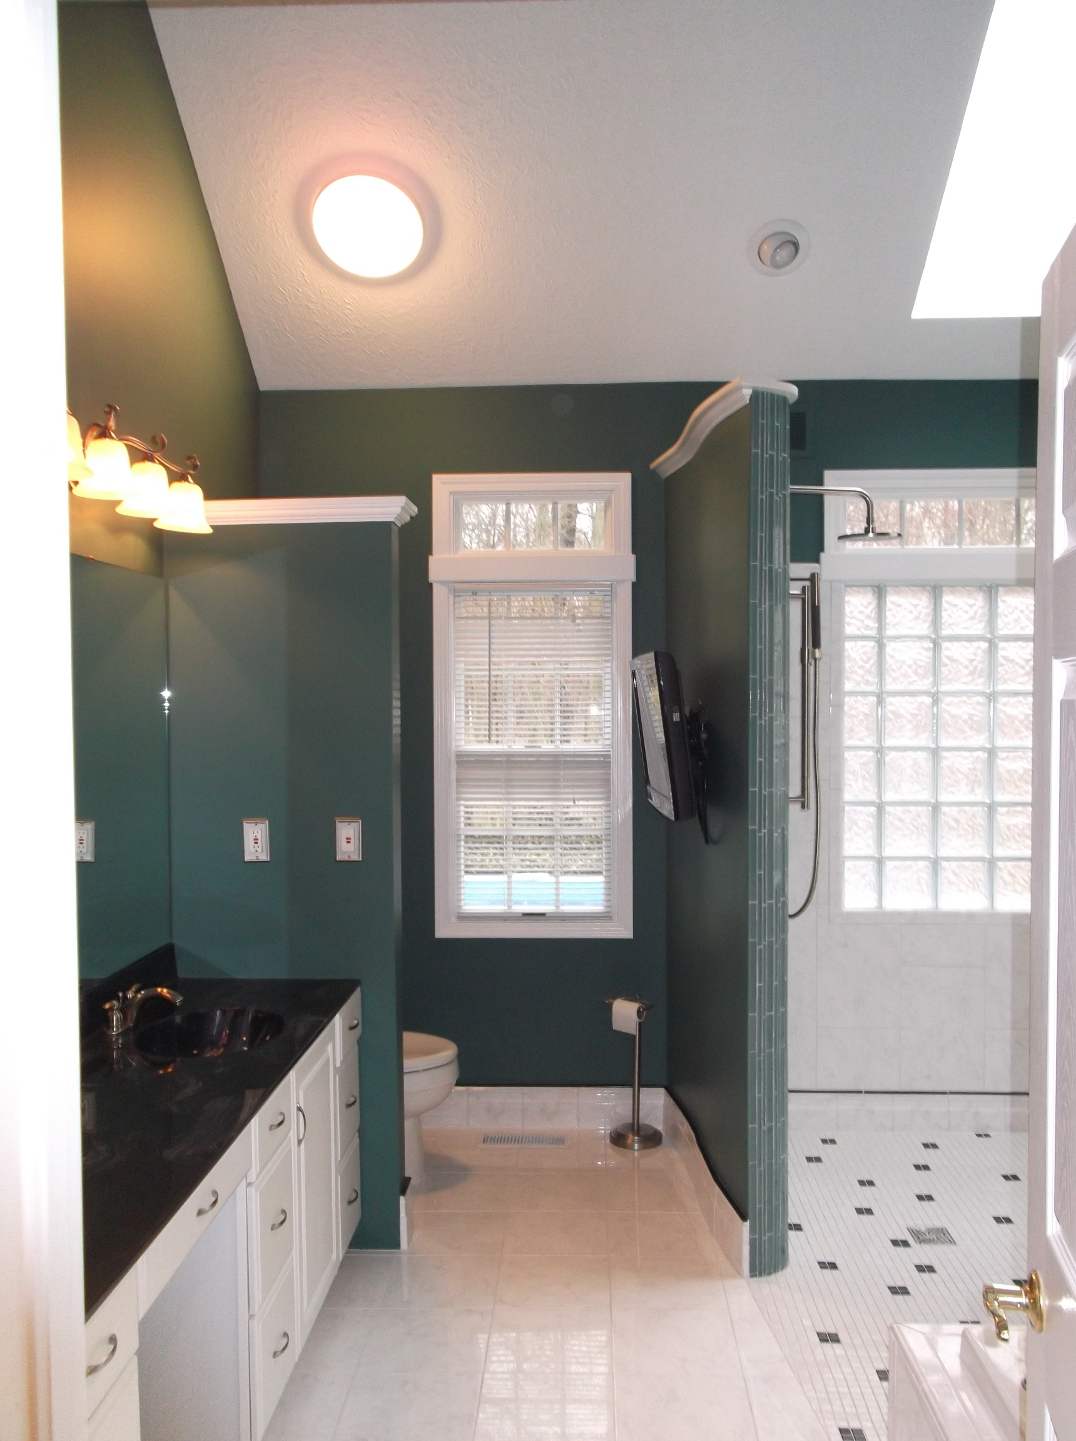 Bathroom Remodeling Cleveland Ohio bathroom, kitchen, basement design remodeling ideas cleveland ohio